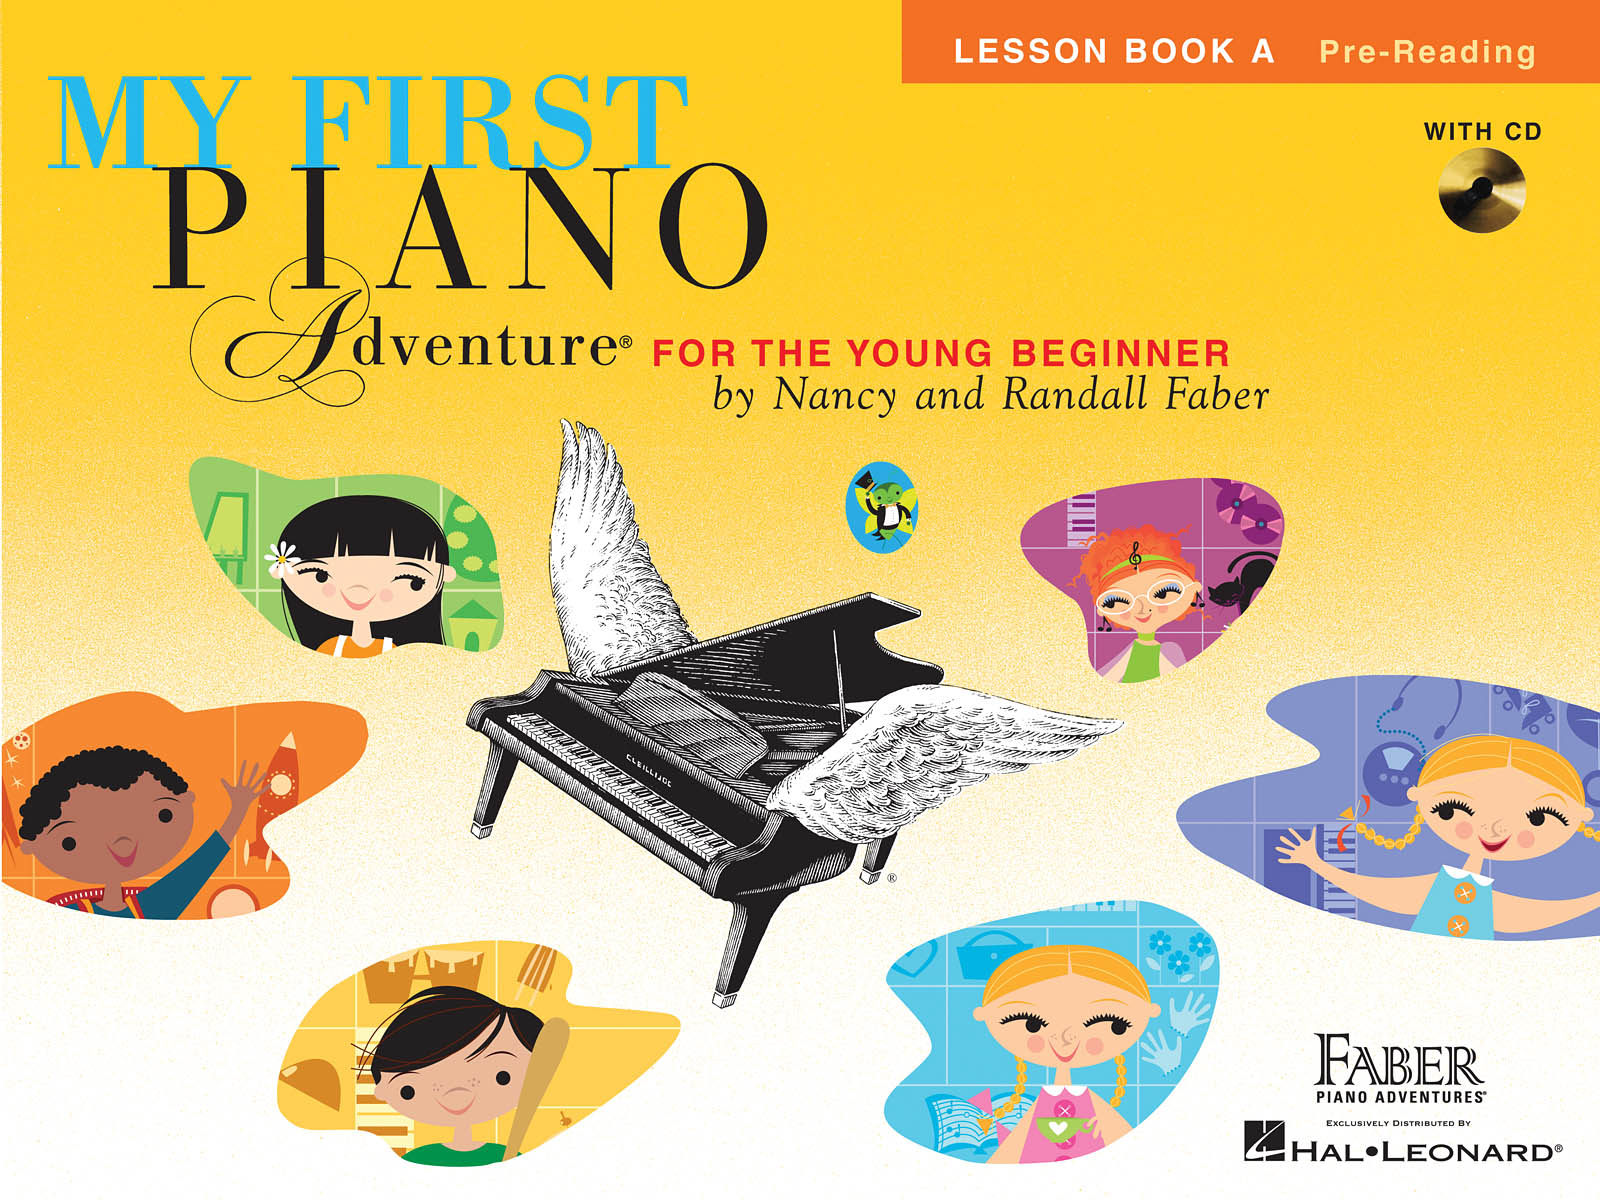 My First Piano Adventure Lesson Book A, Pre-Reading